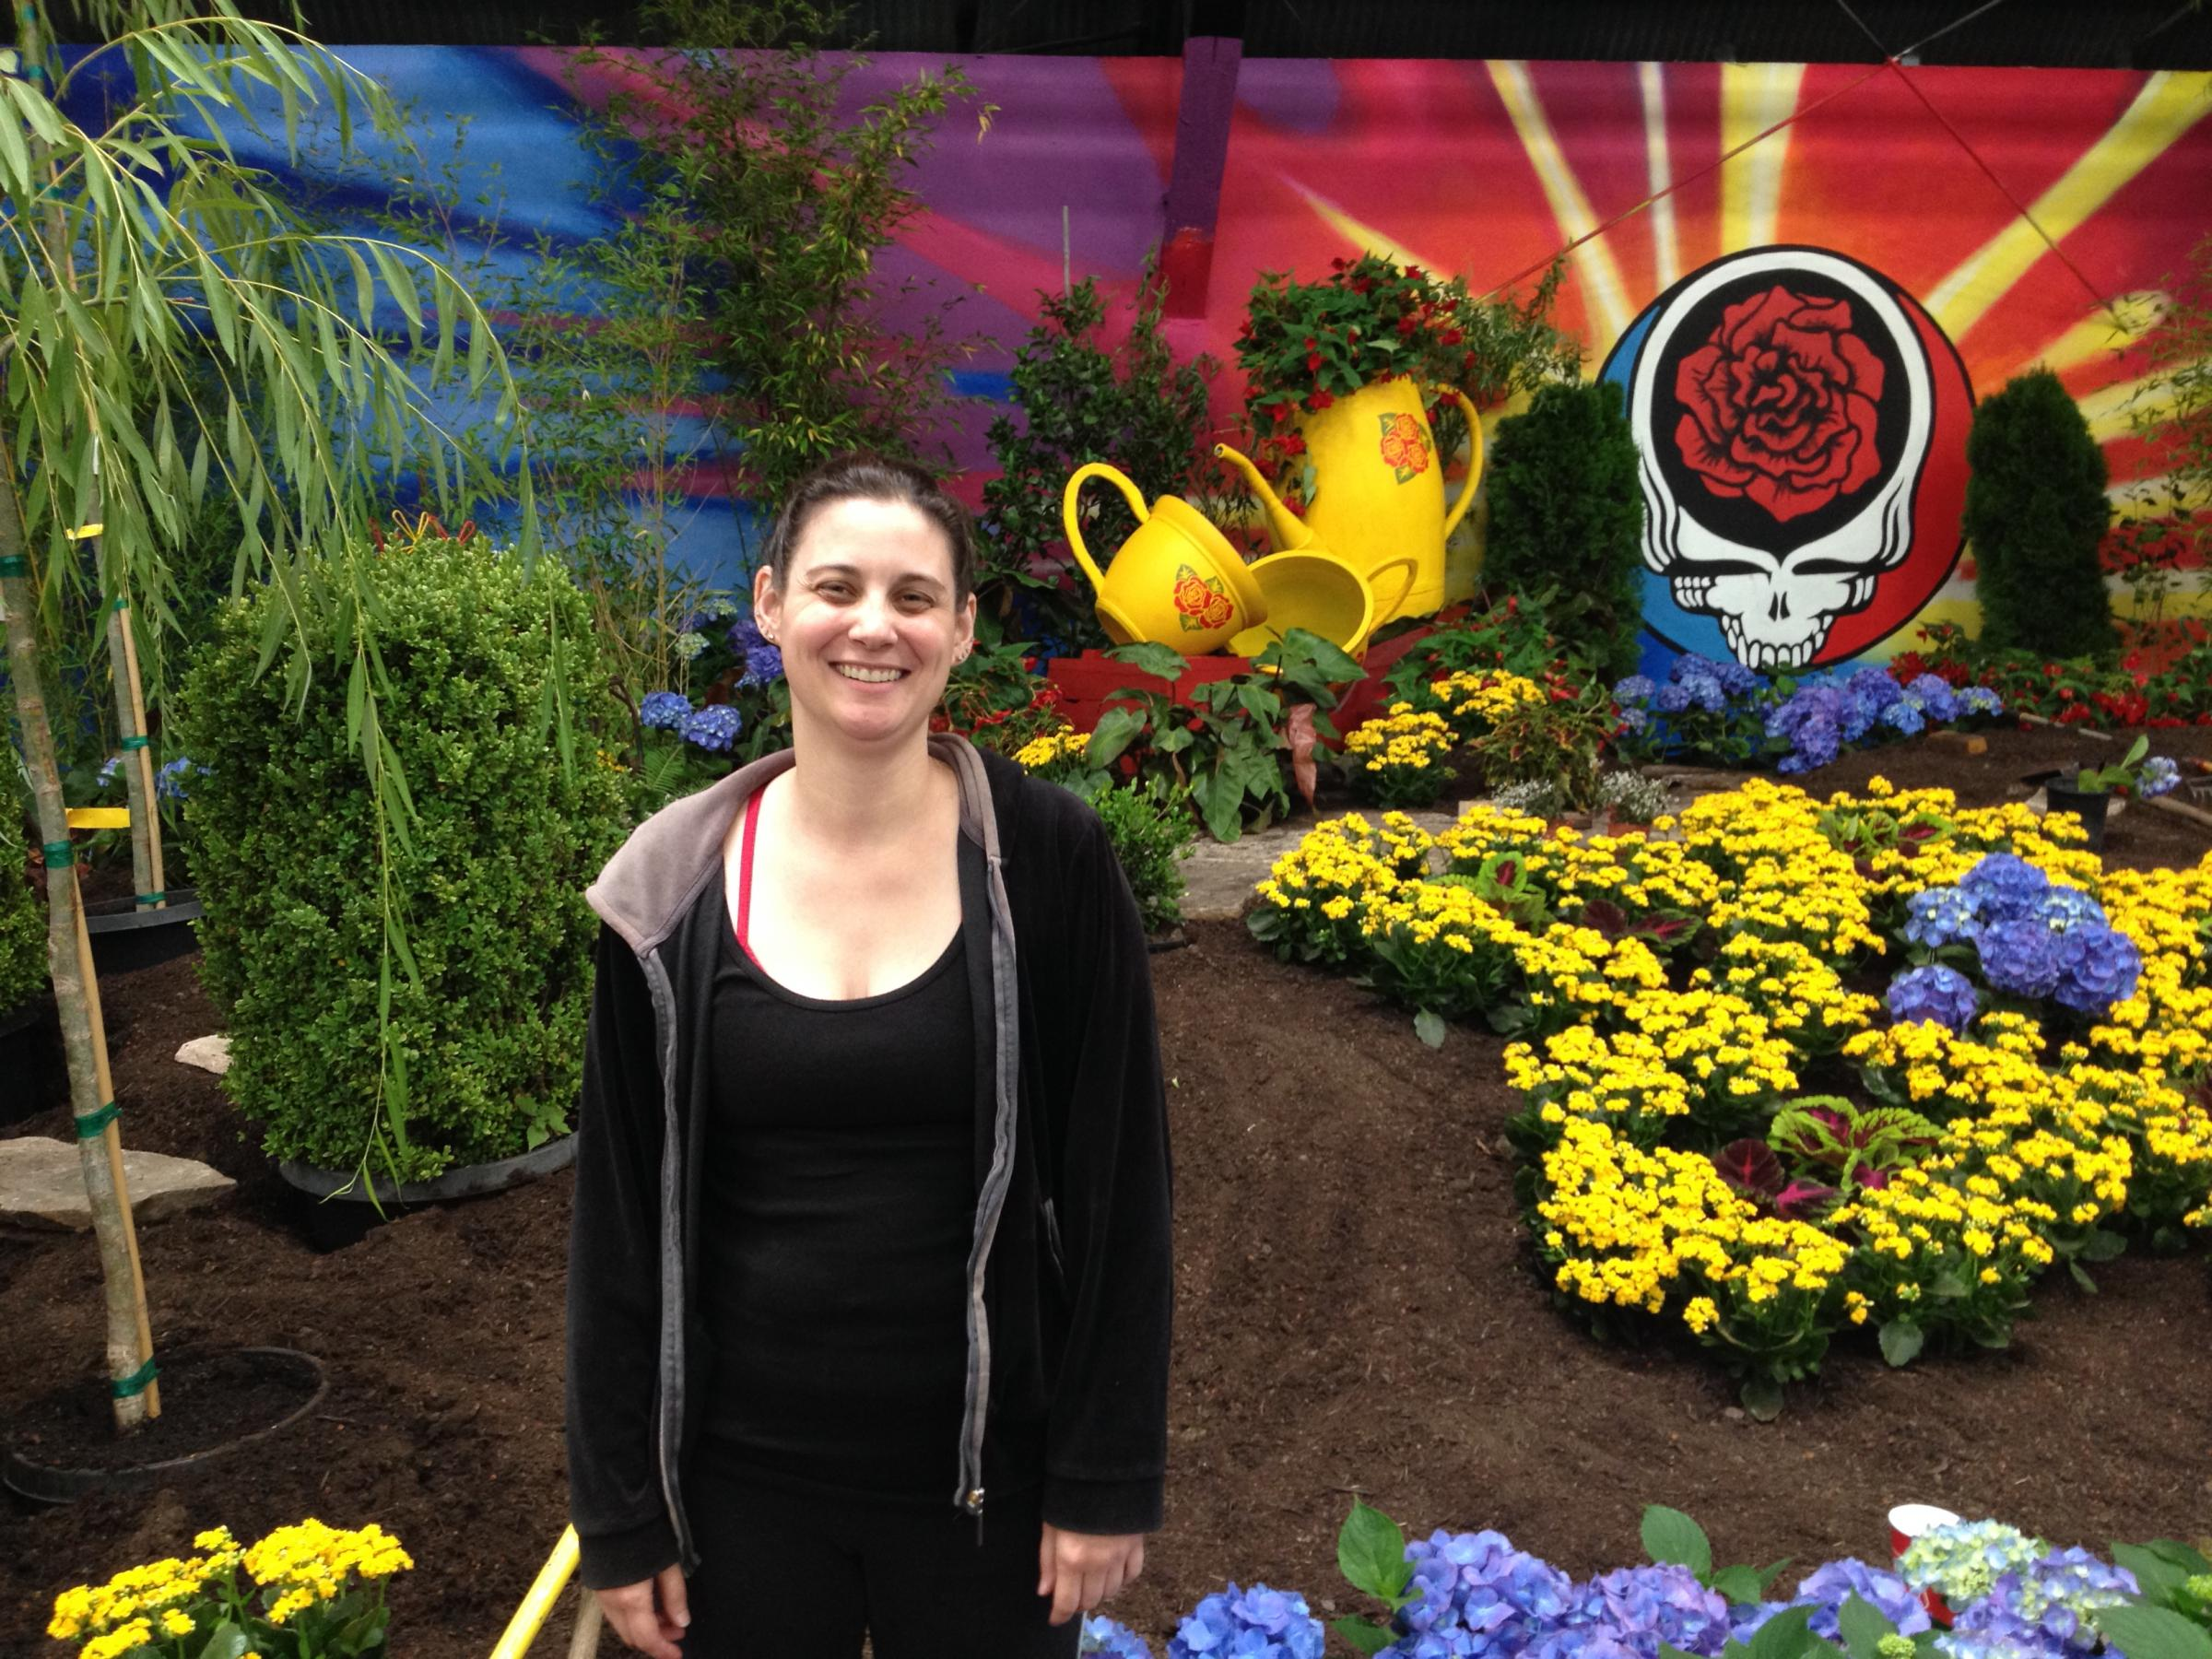 1960s Theme Powers Hall Of Flowers Designs Krcb